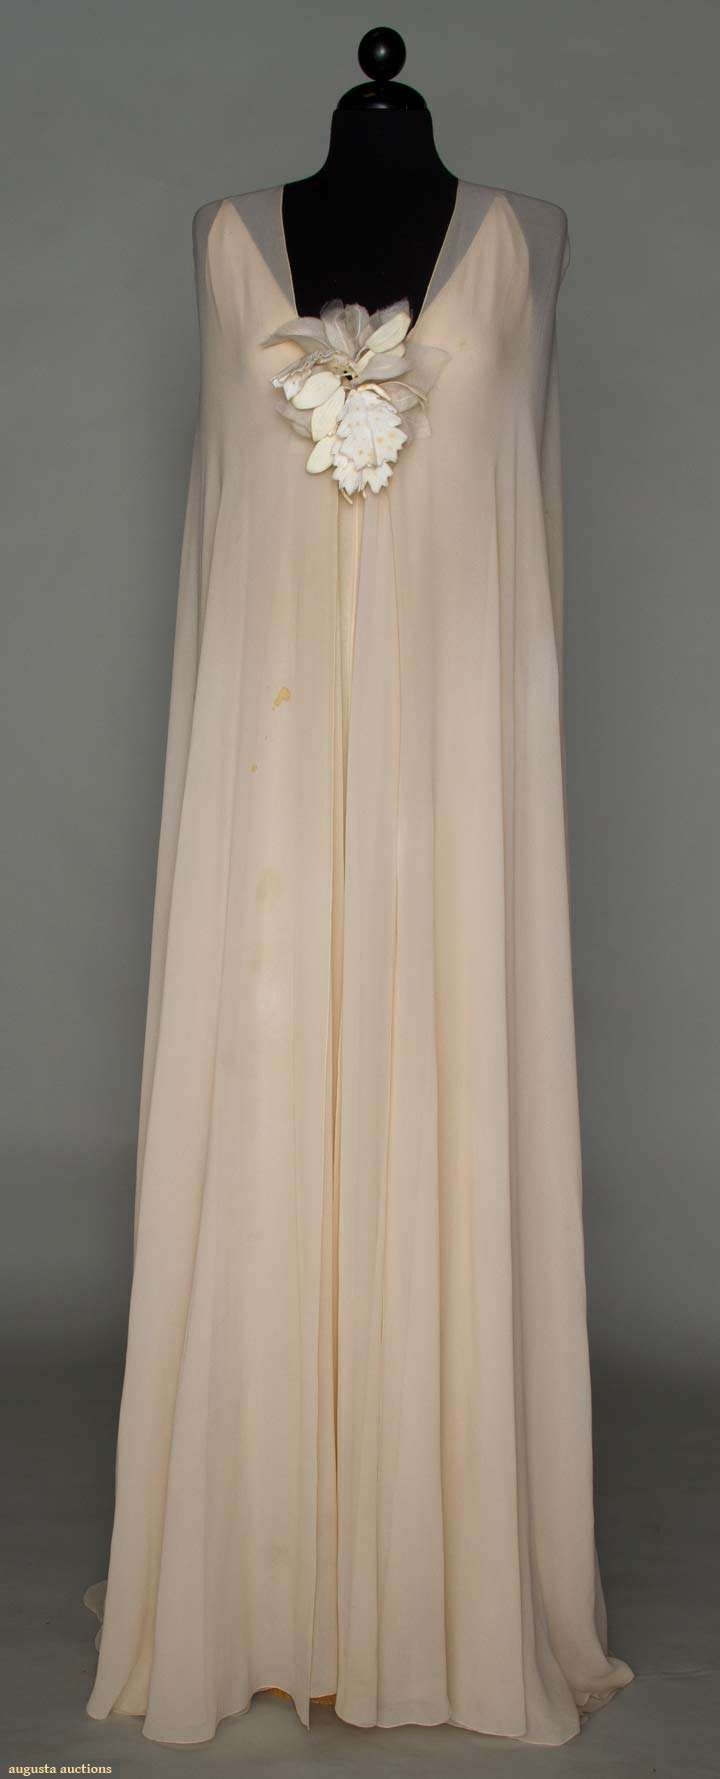 DIOR COUTURE EVENING GOWN, 1974